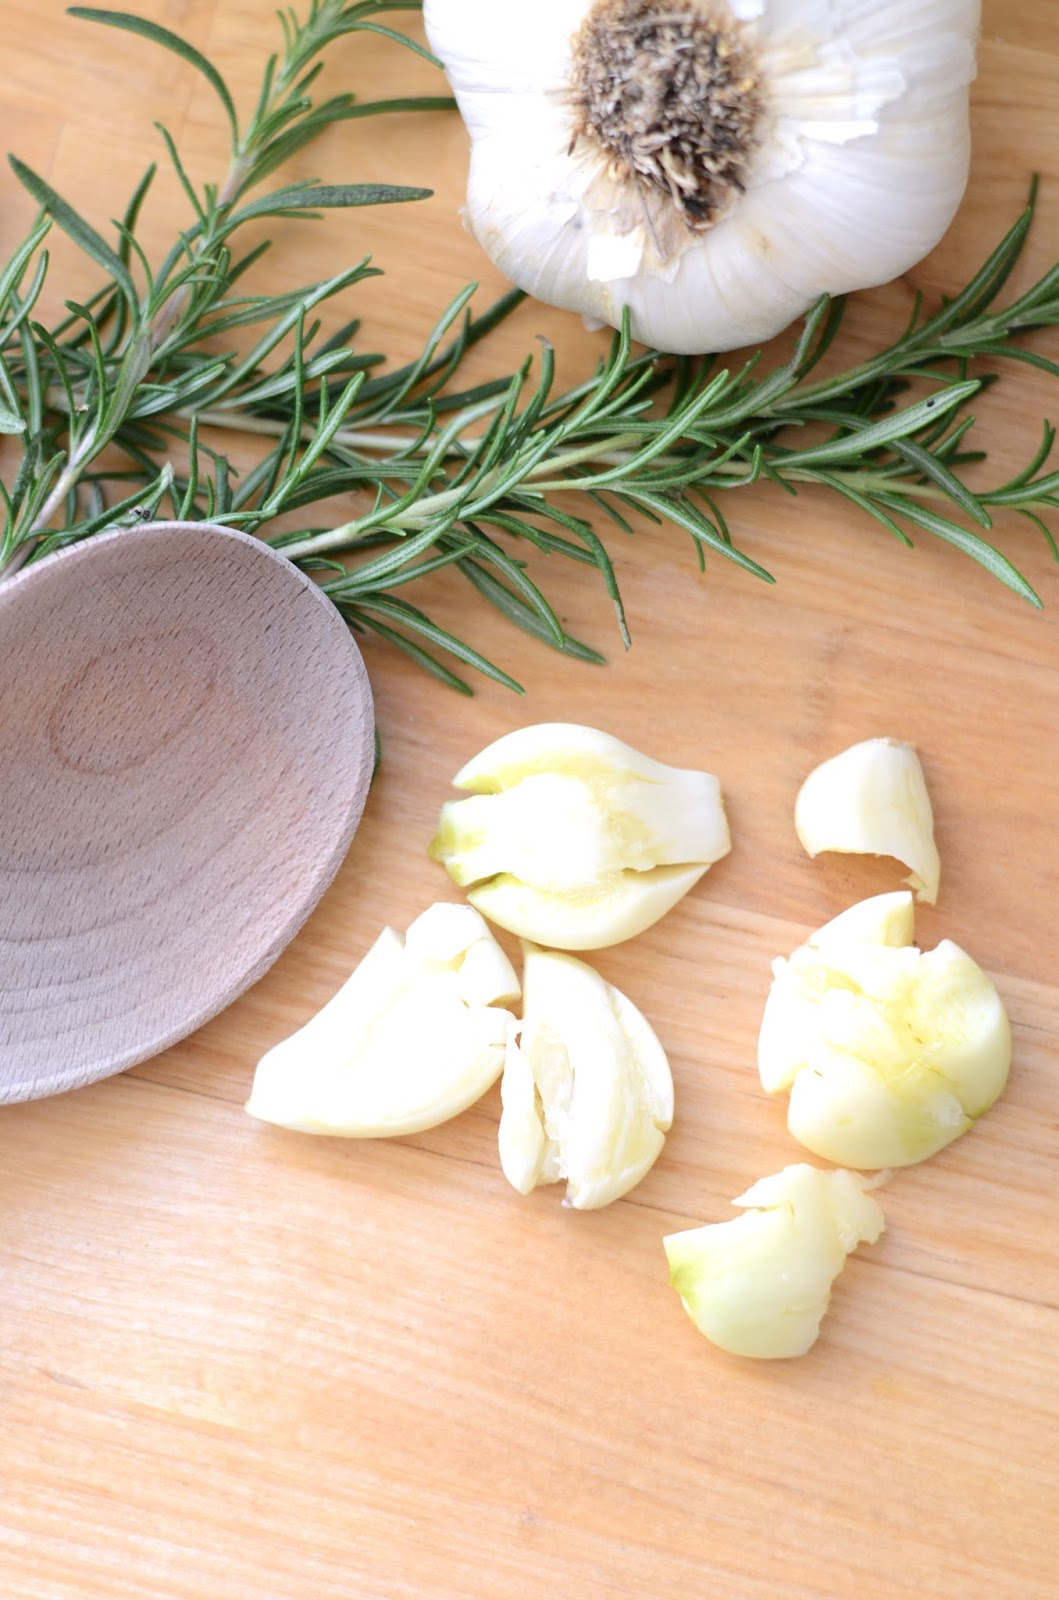 How To Make Garlic Oil Tincture